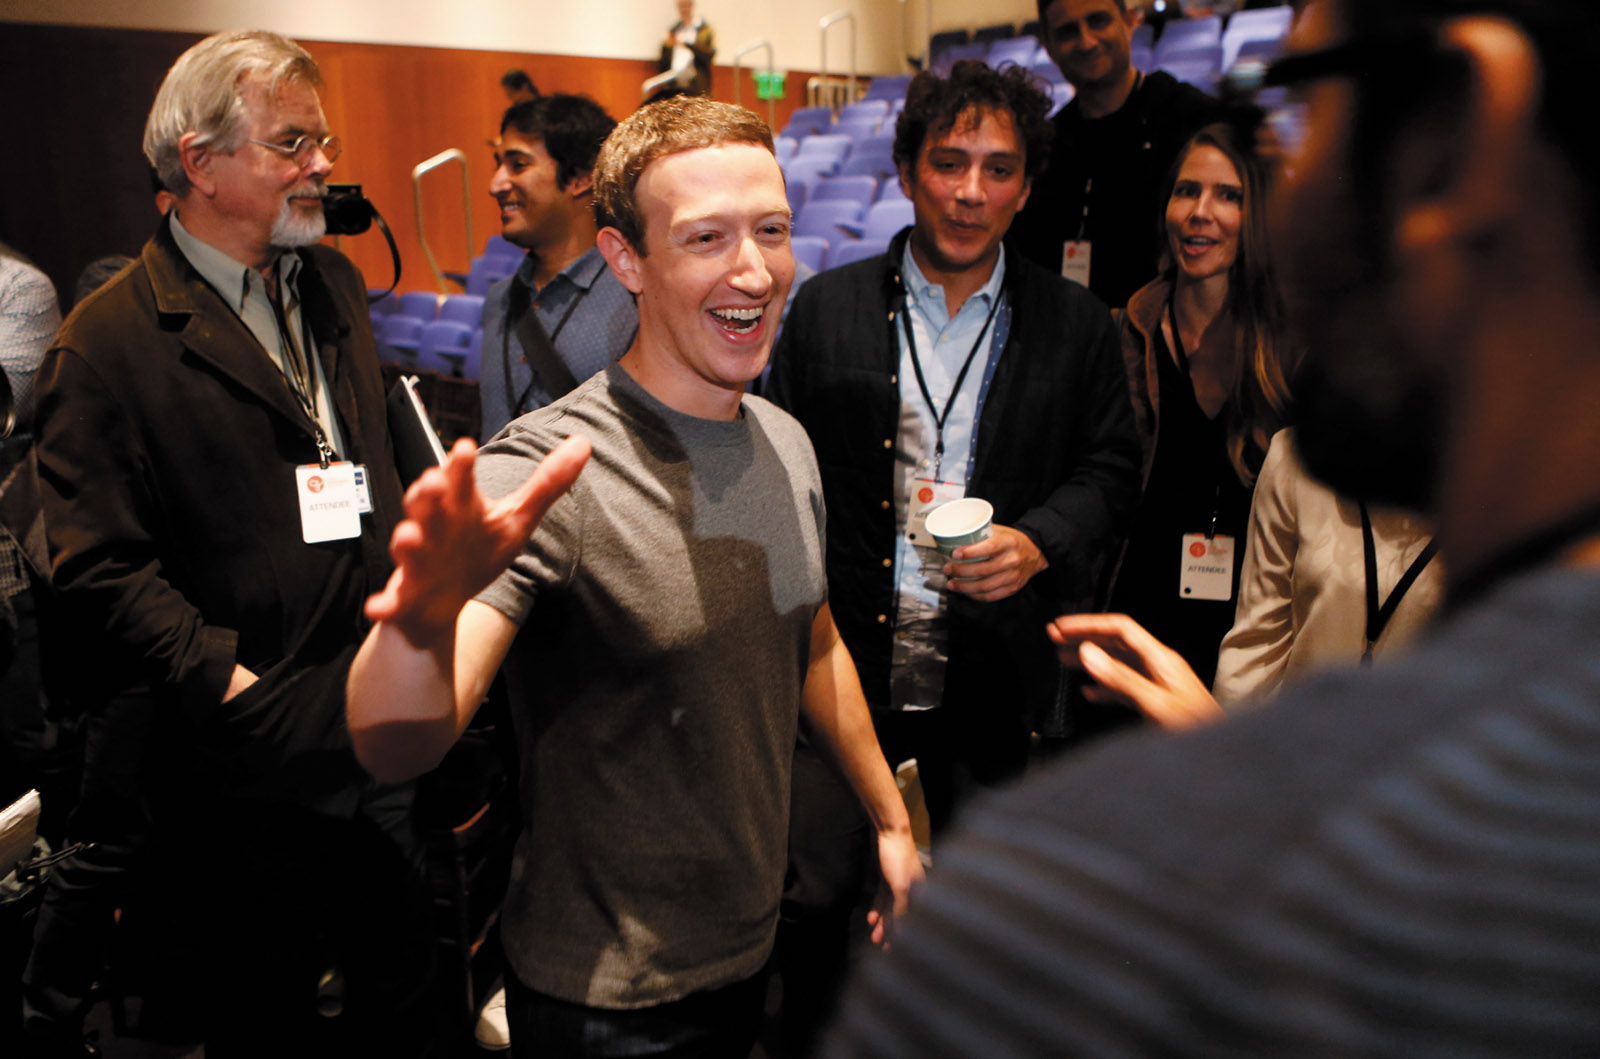 Facebook founder Mark Zuckerberg at the announcement of the Chan Zuckerberg Initiative to 'cure, prevent, or manage all disease' by the end of the century, San Francisco, September 2016